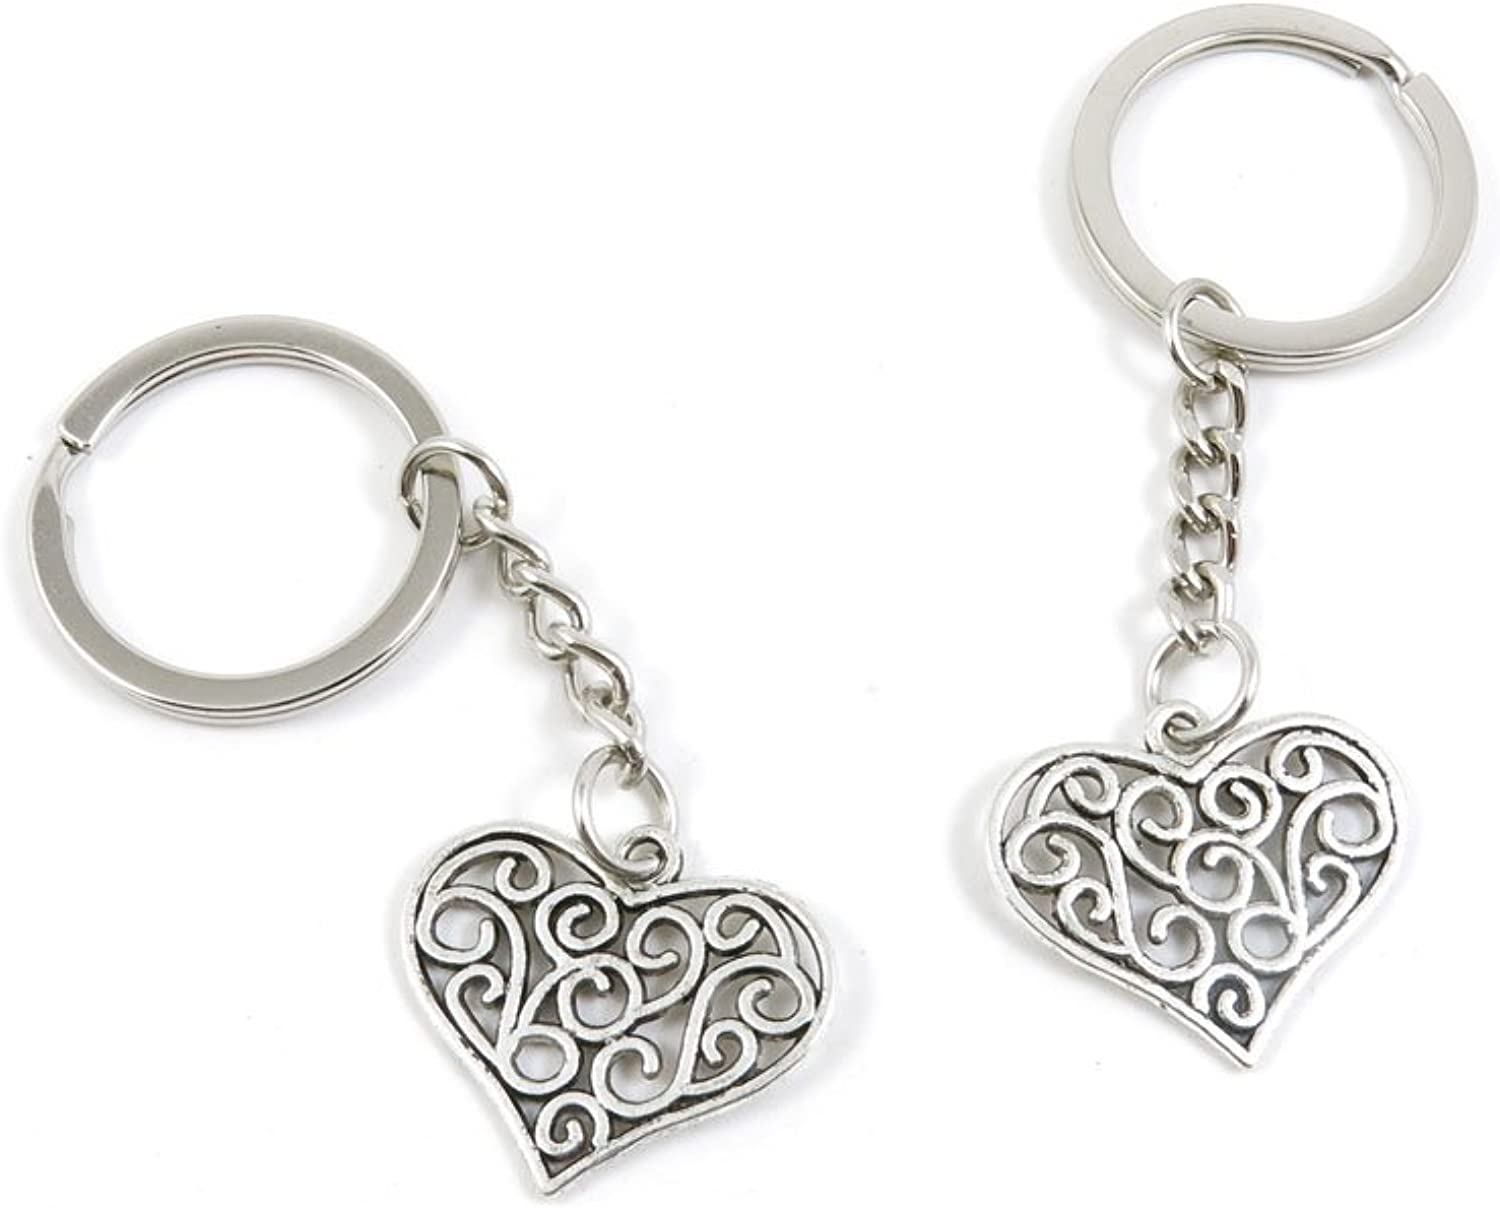 100 Pieces Keychain Keyring Door Car Key Chain Ring Tag Charms Bulk Supply Jewelry Making Clasp Findings C5QP0X Hollow Heart Signs